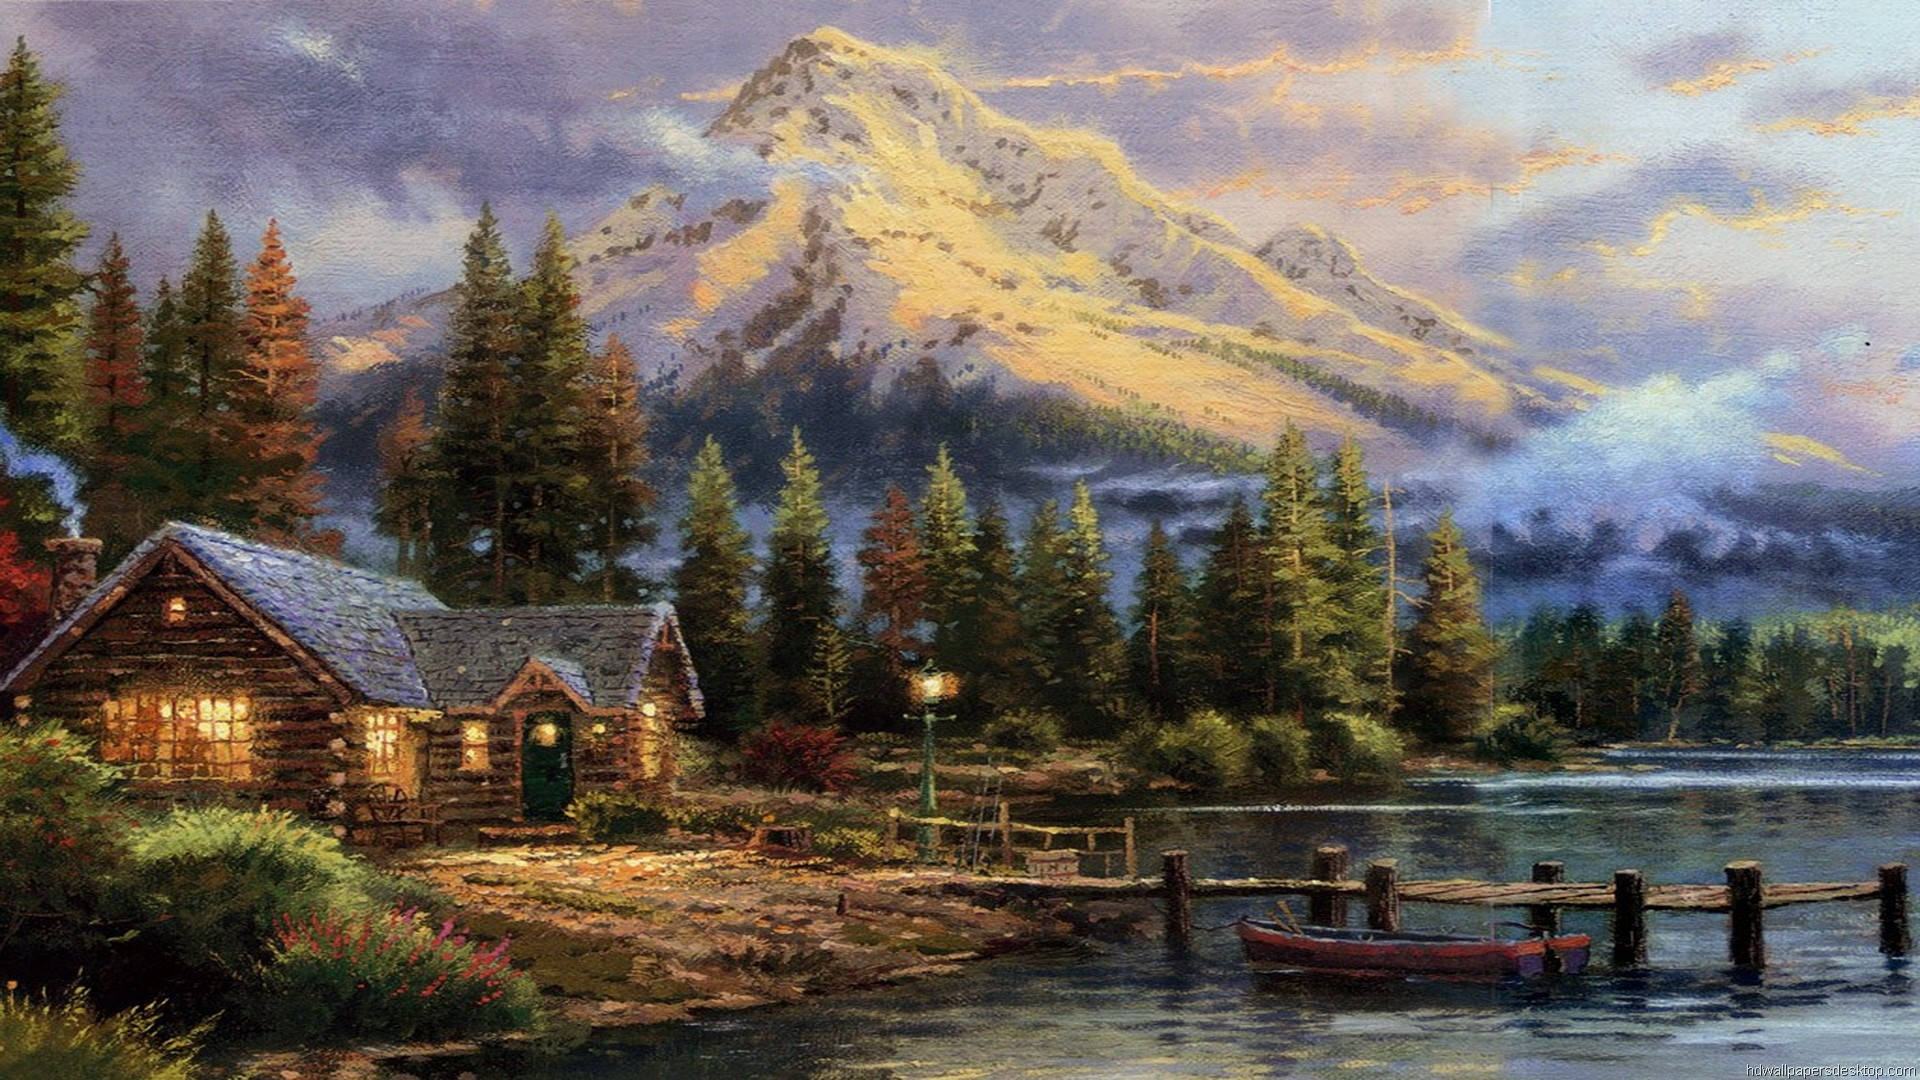 1920x1080 Thomas Kinkade Wallpaper for Computers - WallpaperSafari Thomas Kinkade Summer Wallpaper - WallpaperSafari .